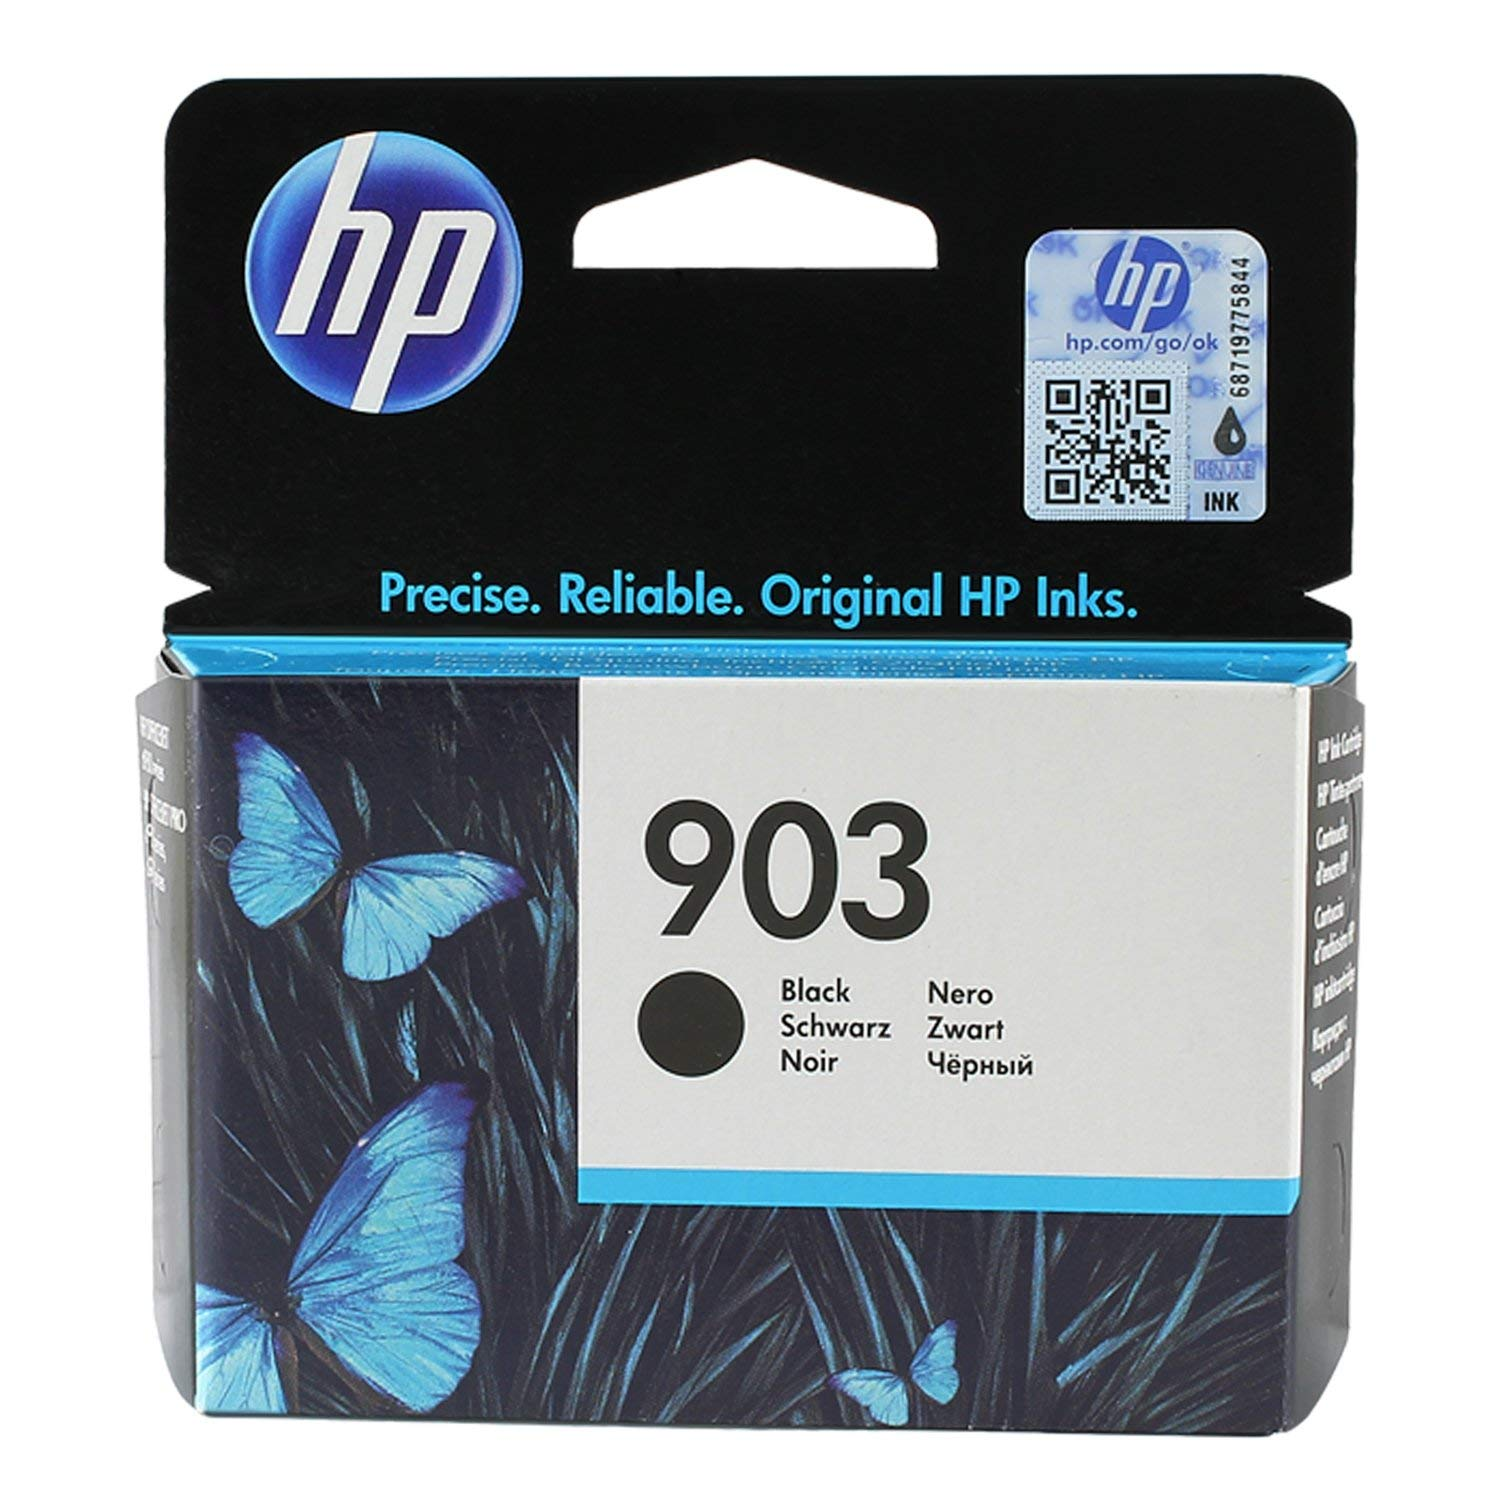 HP 903 (T6L99AE) Original Ink Cartridge - Black